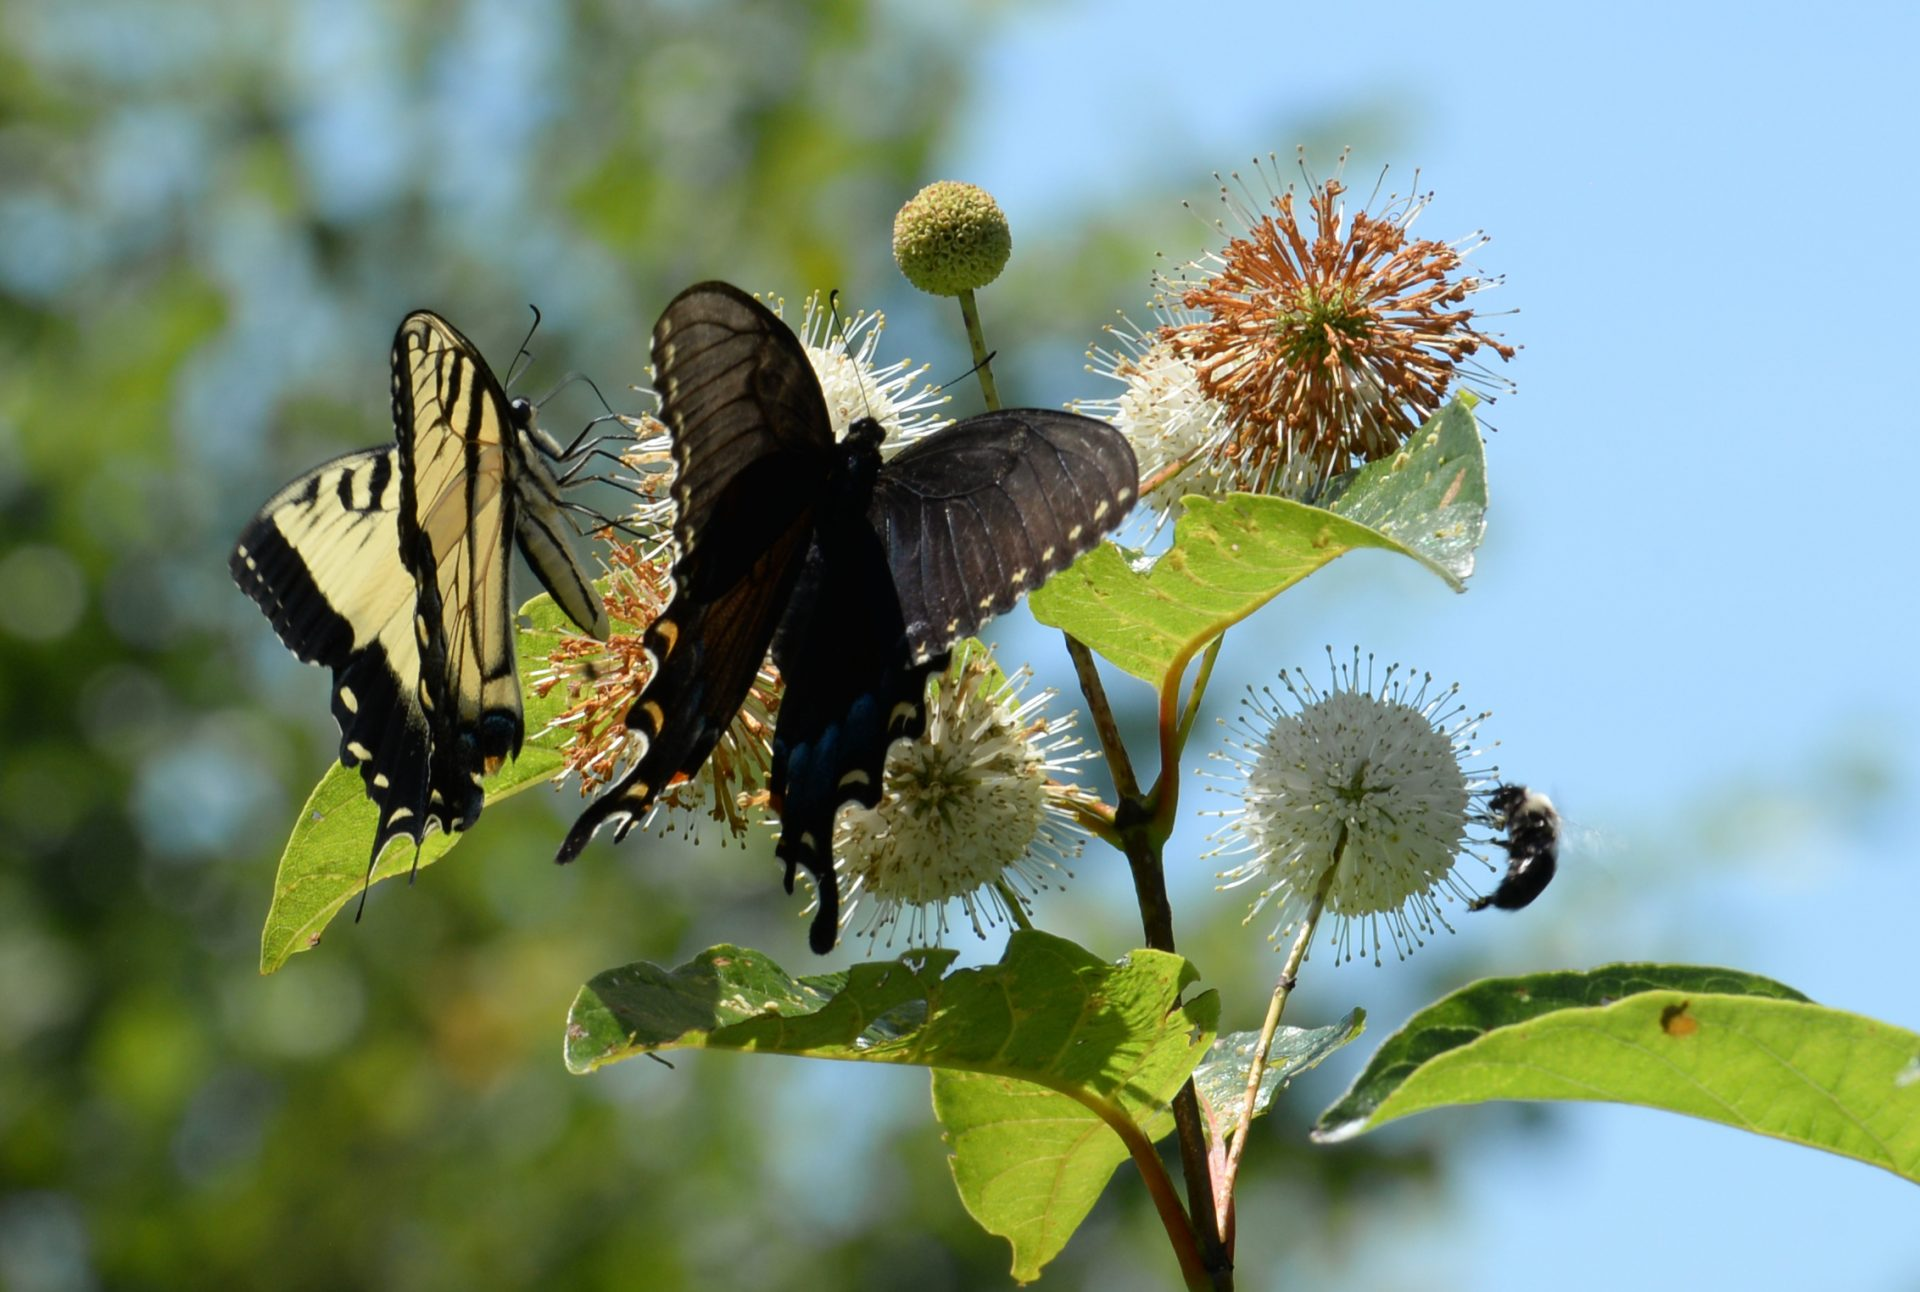 Buttonbush with Butterflies. Photo by Drausin Wulsin.